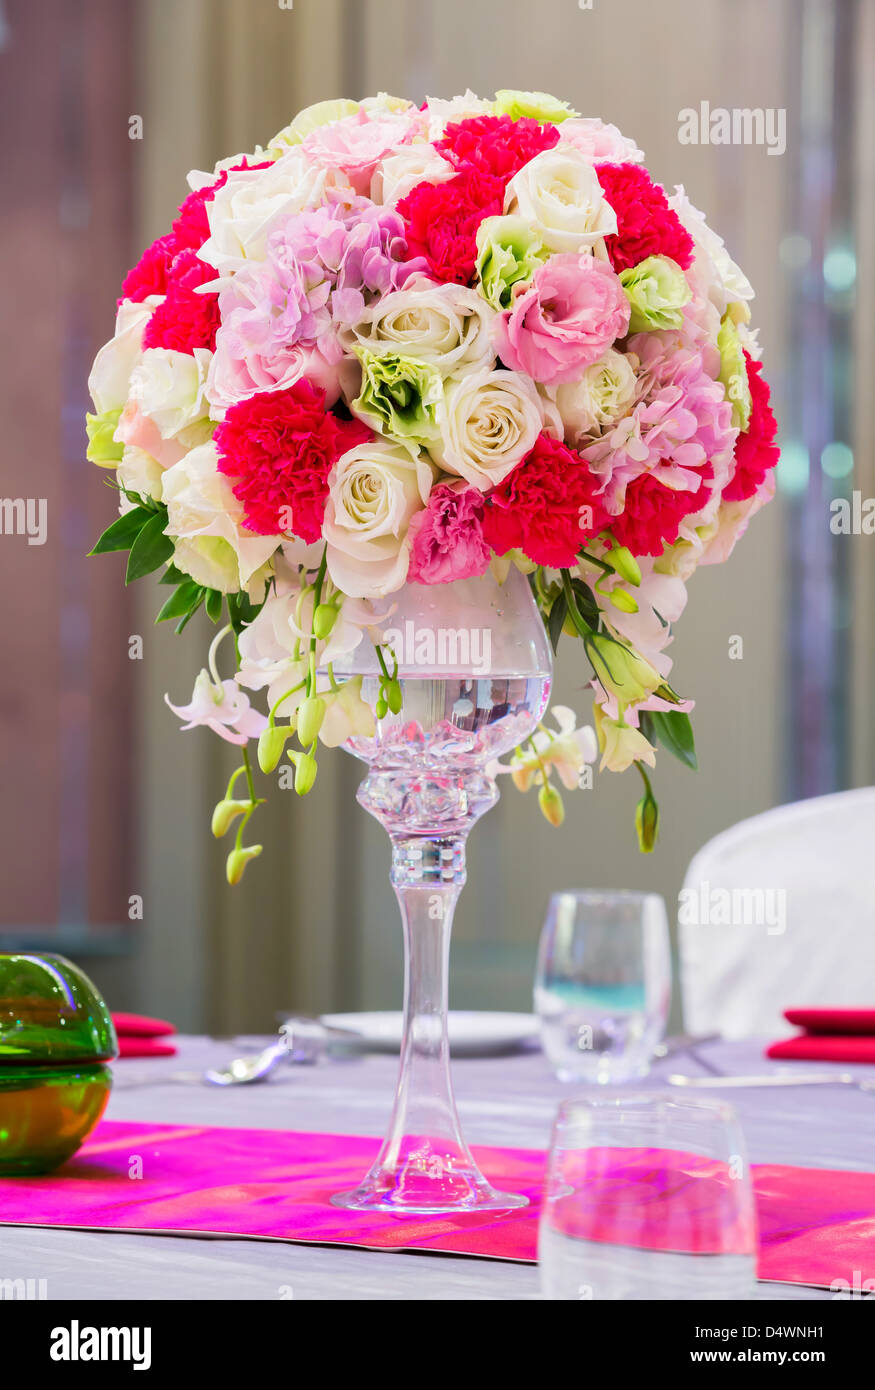 Flower bouquet in glass vase on dining table - Stock Image